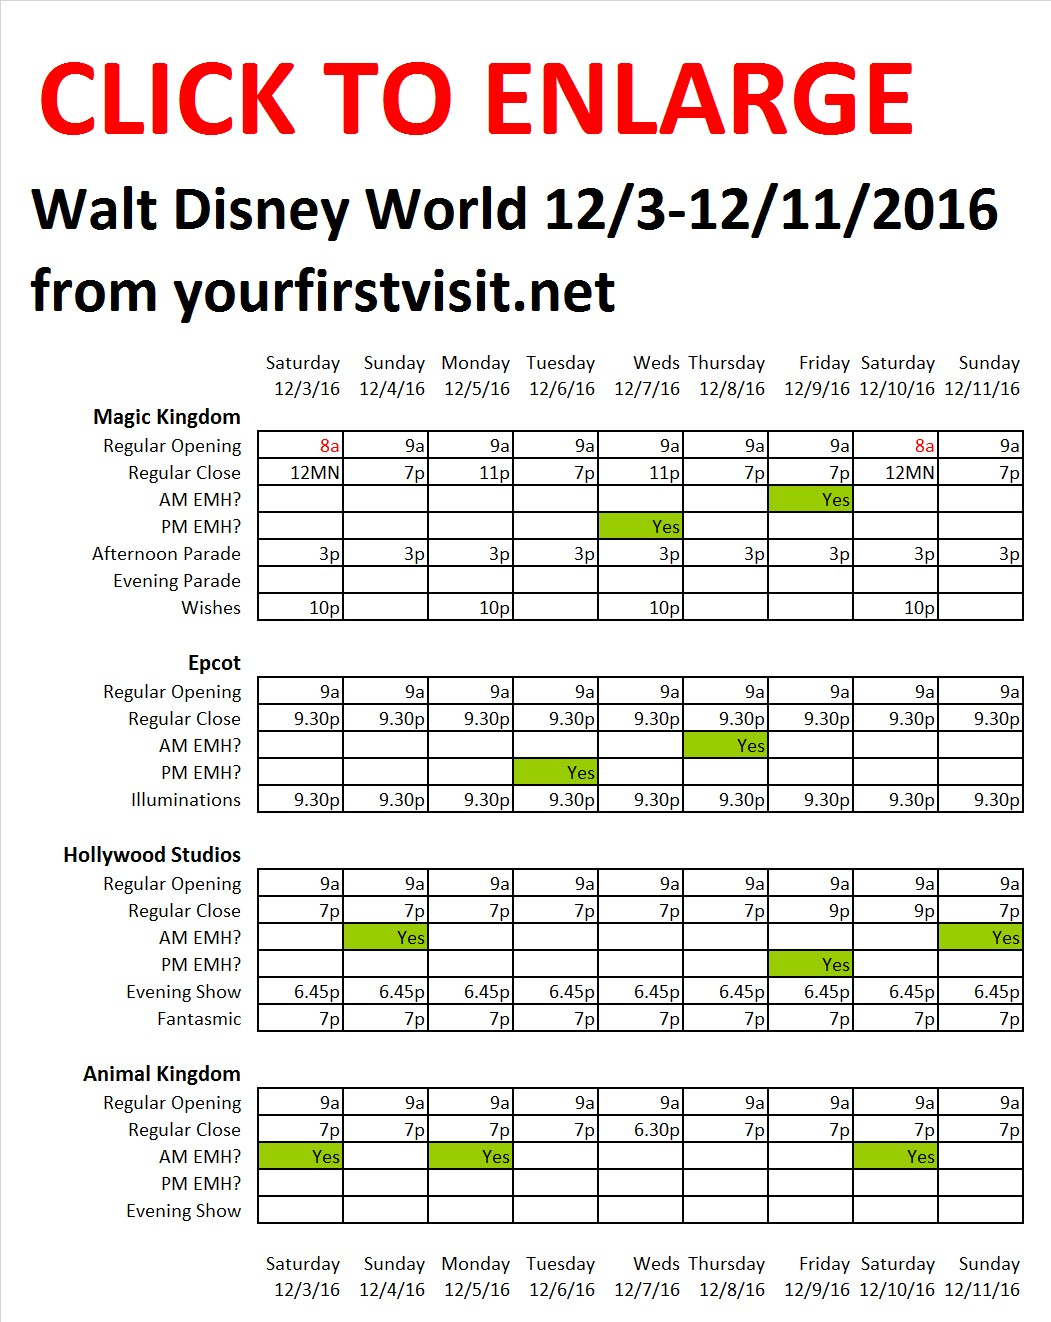 disney-world-12-3-to-12-11-2016-from-yourfirstvisit-net